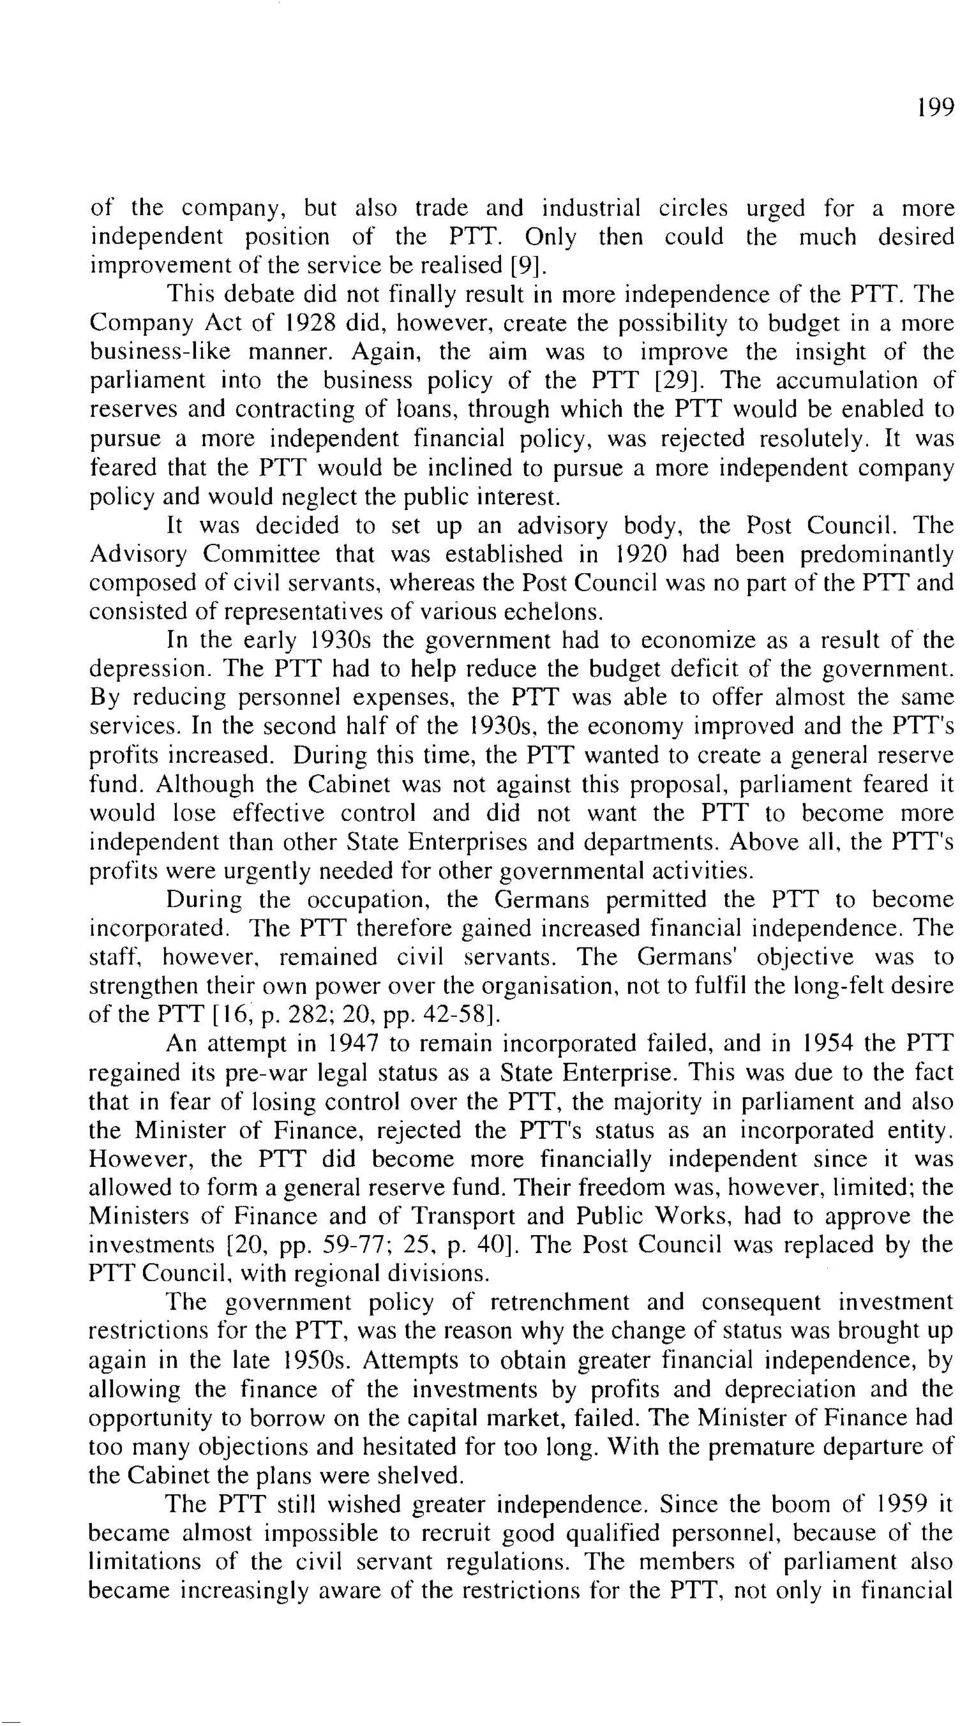 Again, the aim was to improve the insight of the parliament into the business policy of the PTT [29].